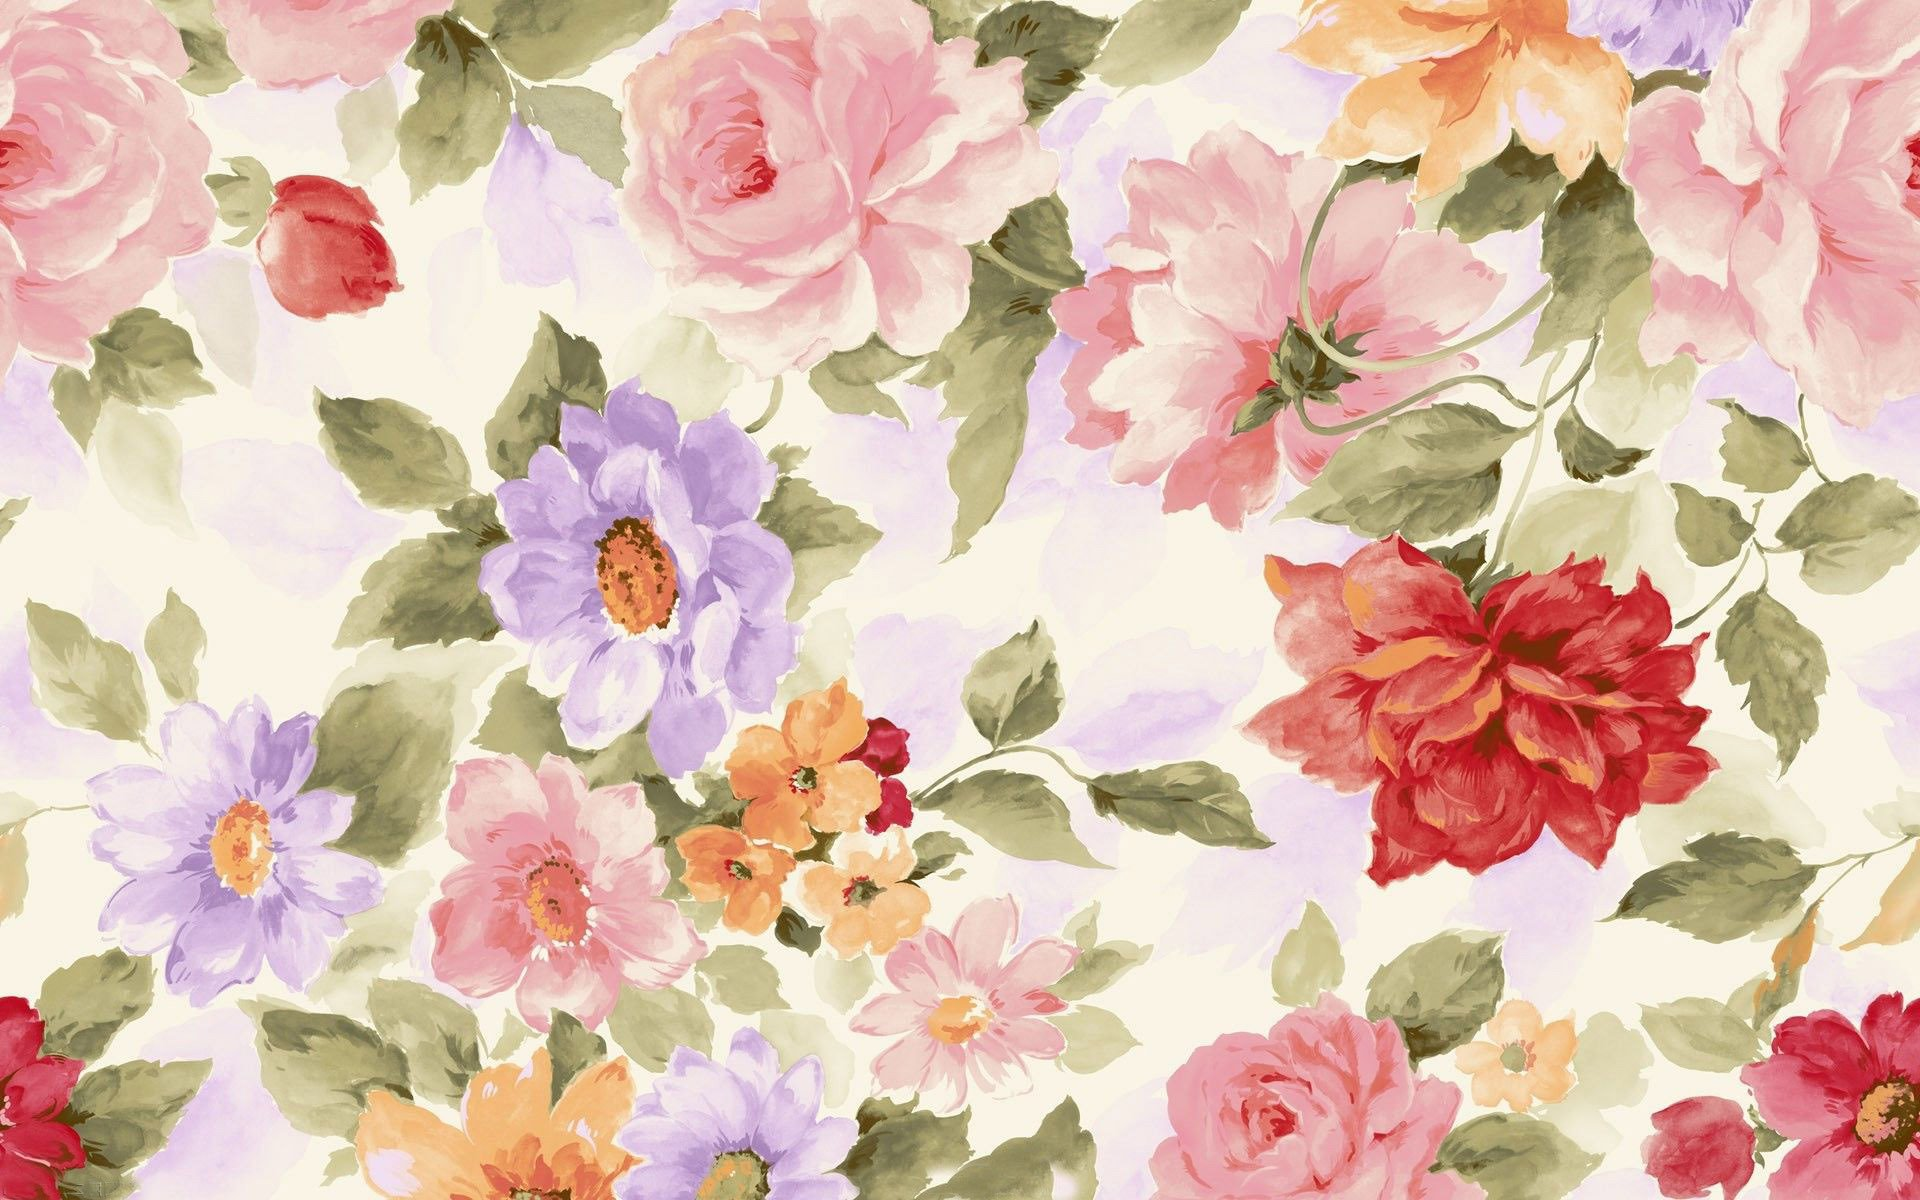 Flowers Painting Wallpaper 17161 1920x1200